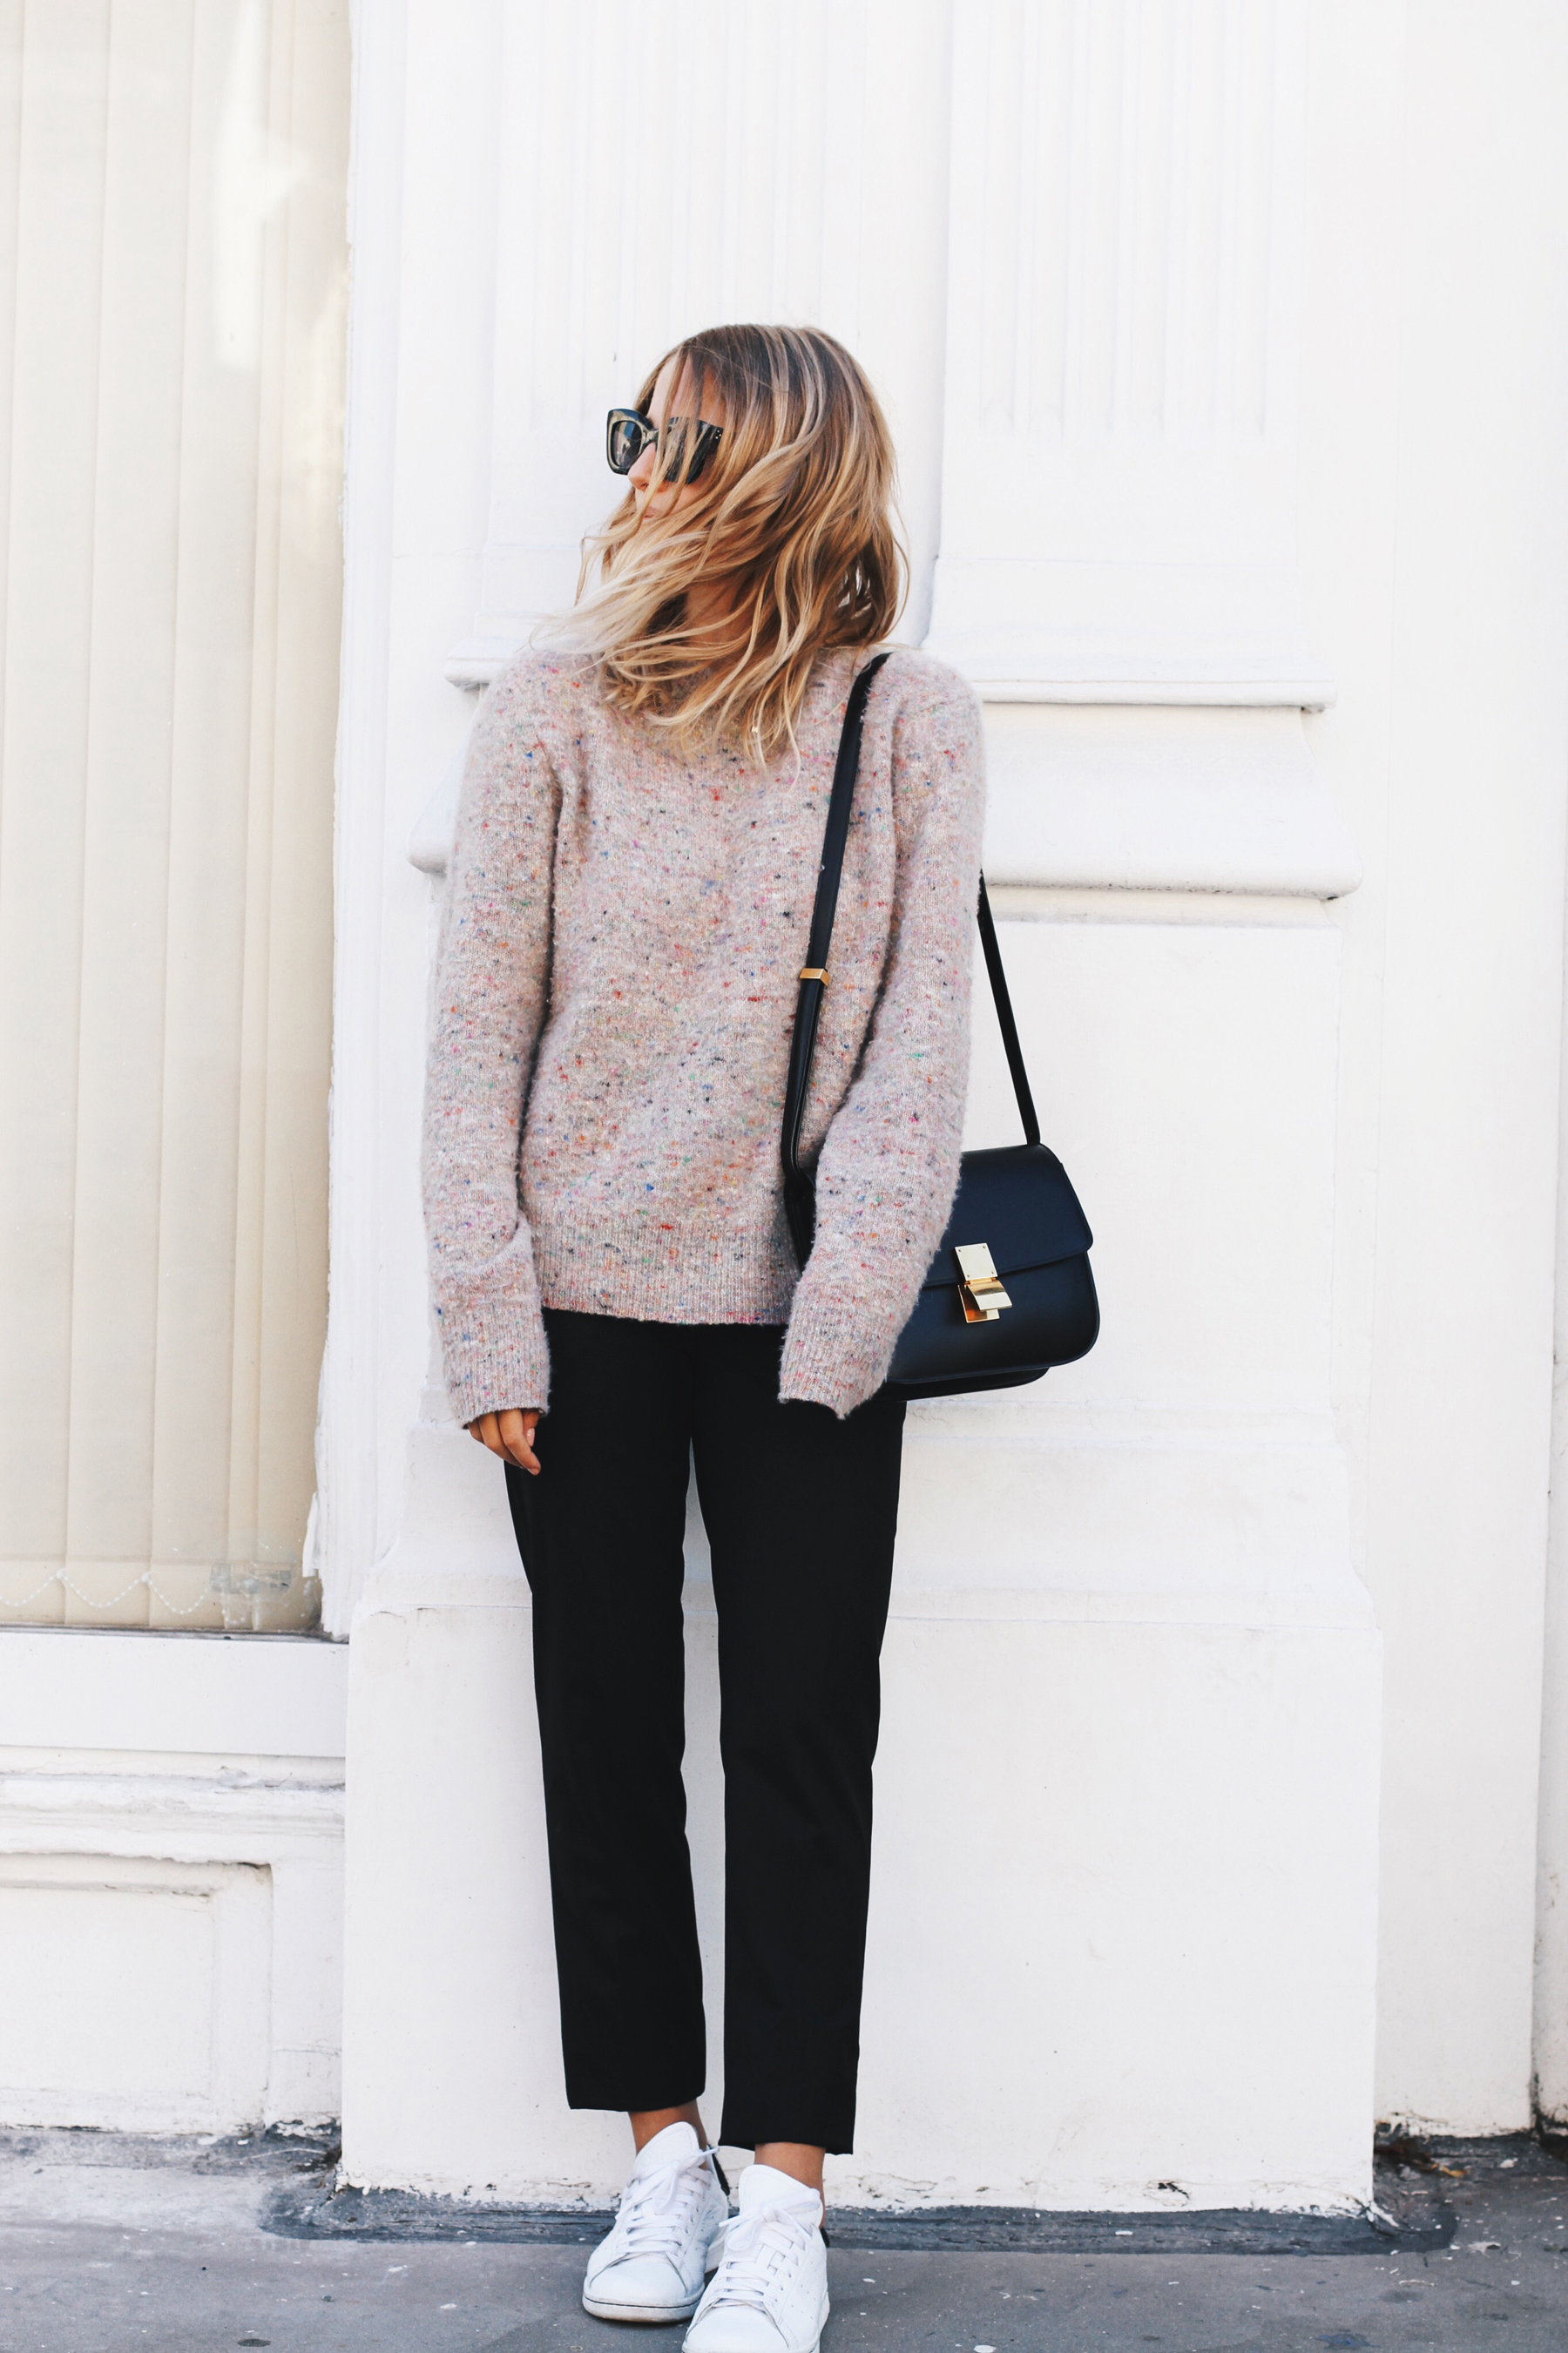 Black cigarette trousers go great with a pastel knit. Via mijaflatau.com. Knit jumper: ACNE studios, Bag: Celine.